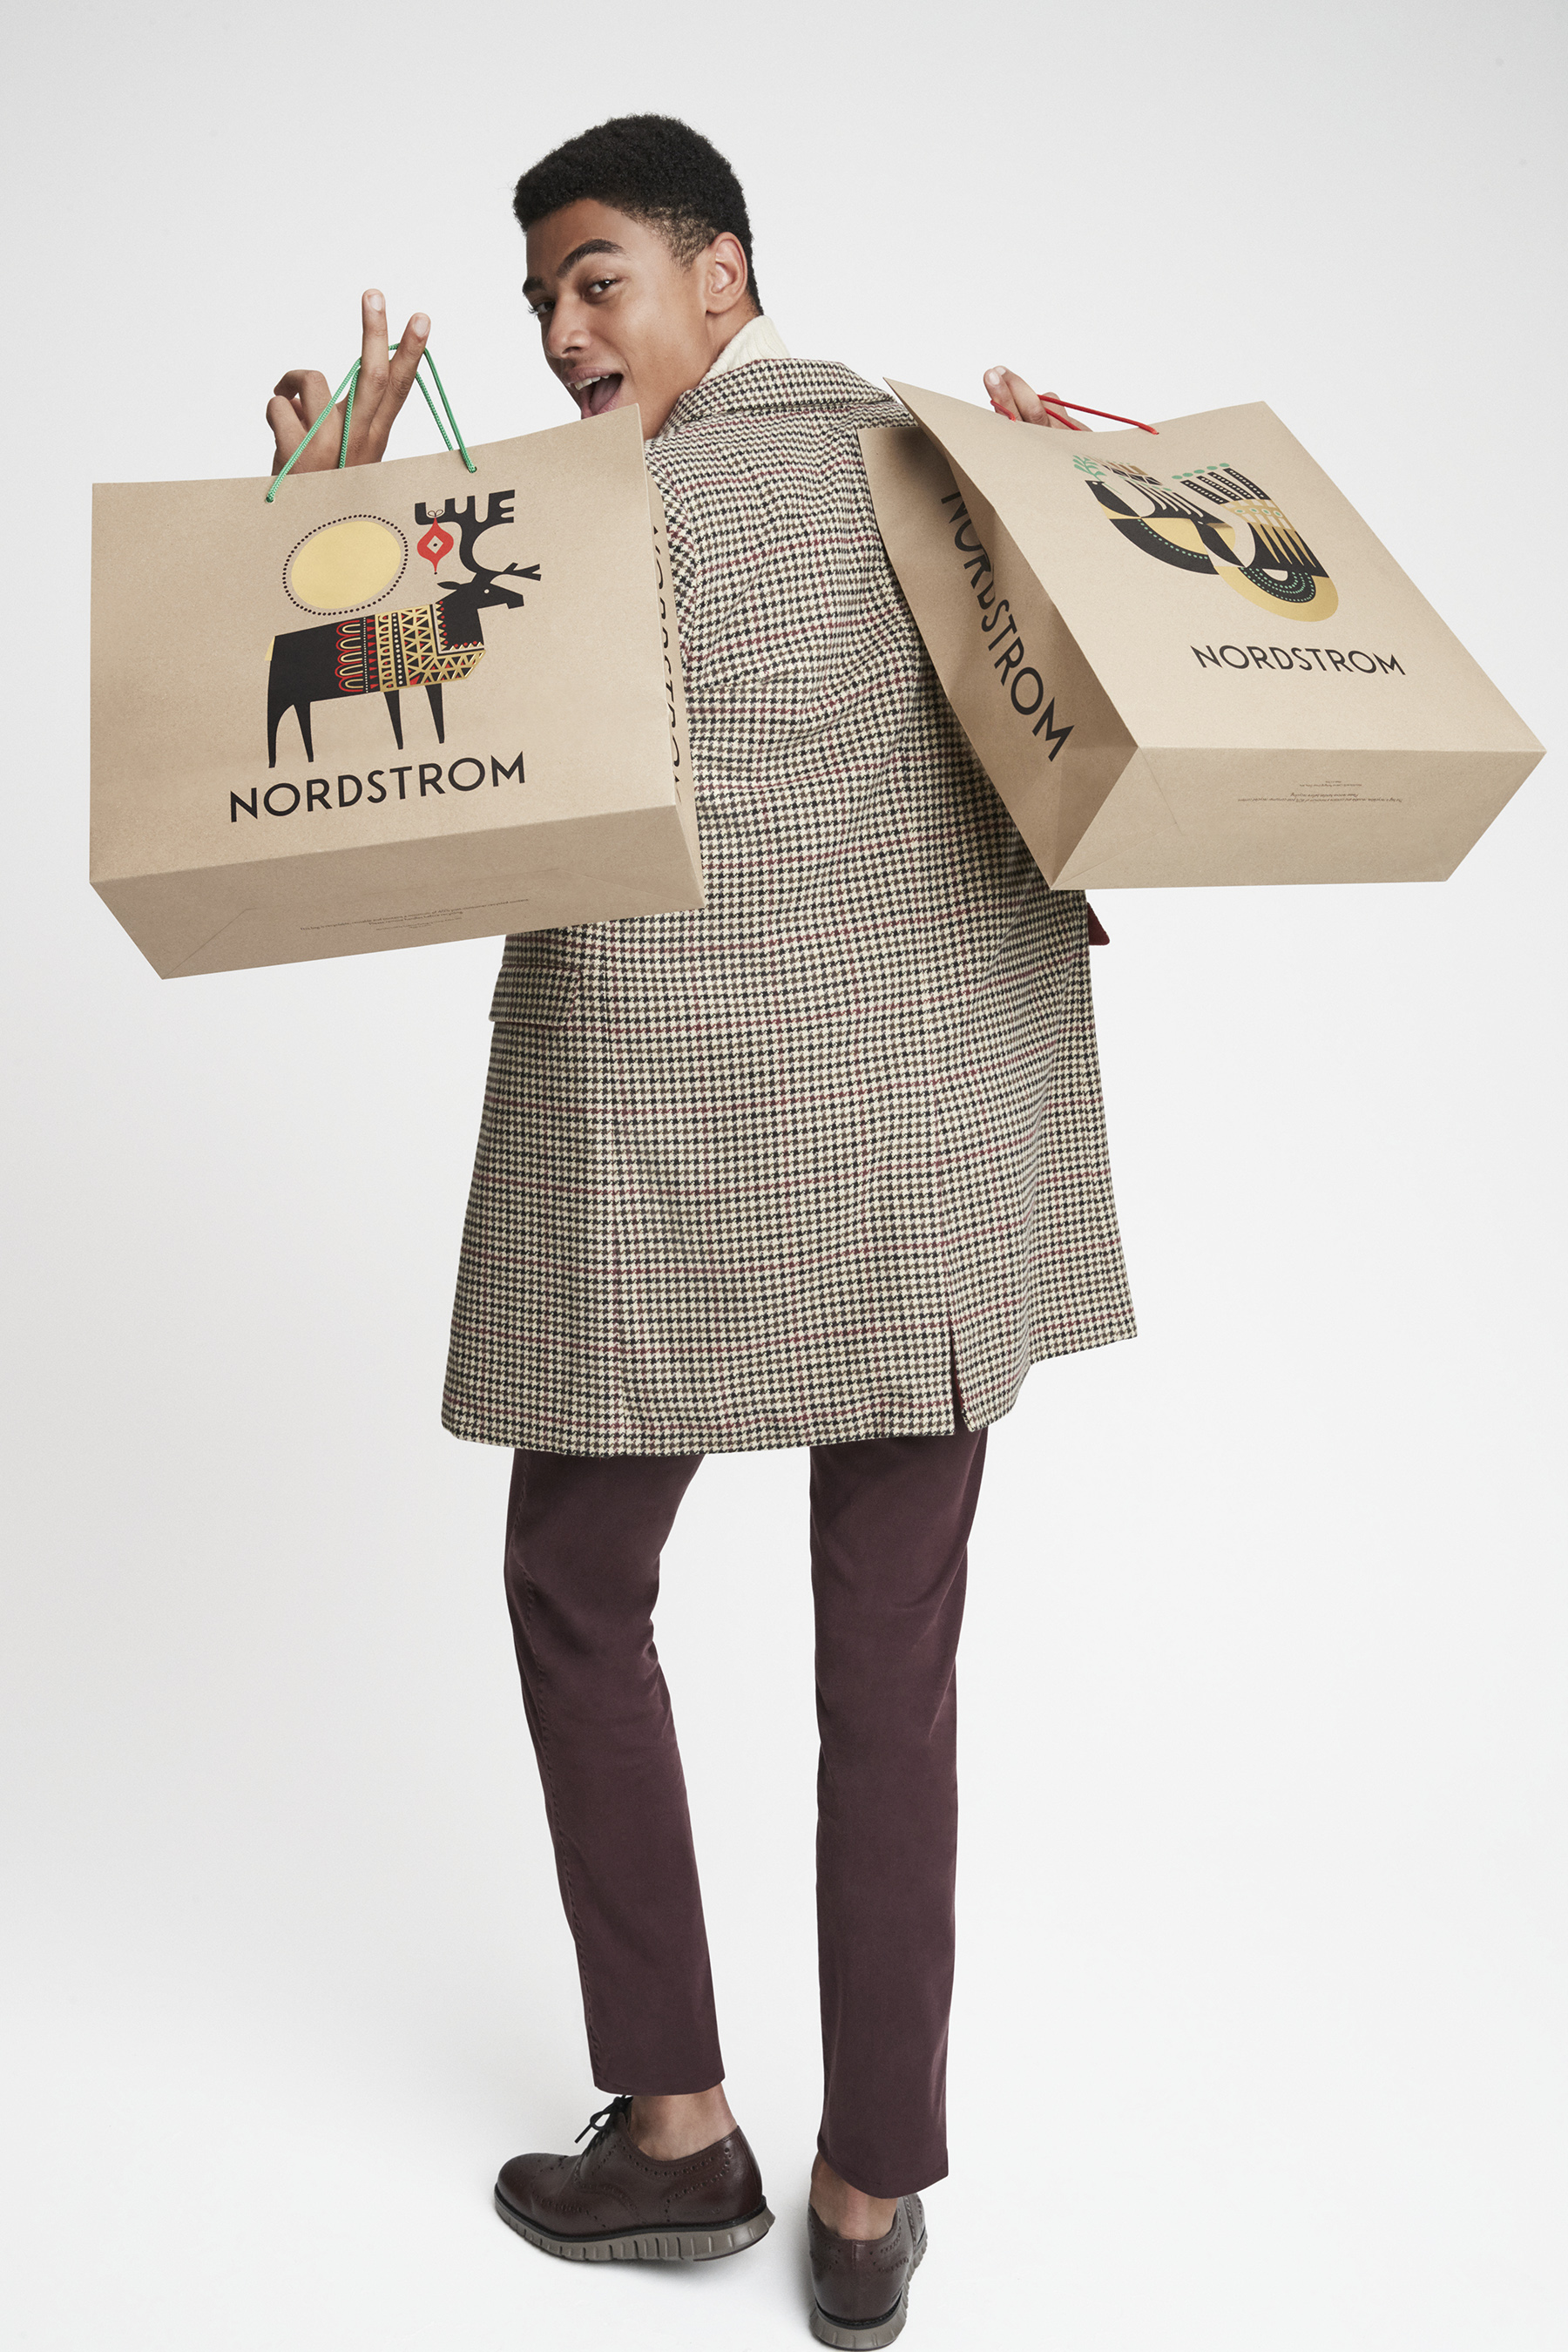 Nordstrom Kicks Off The Season Of Giving